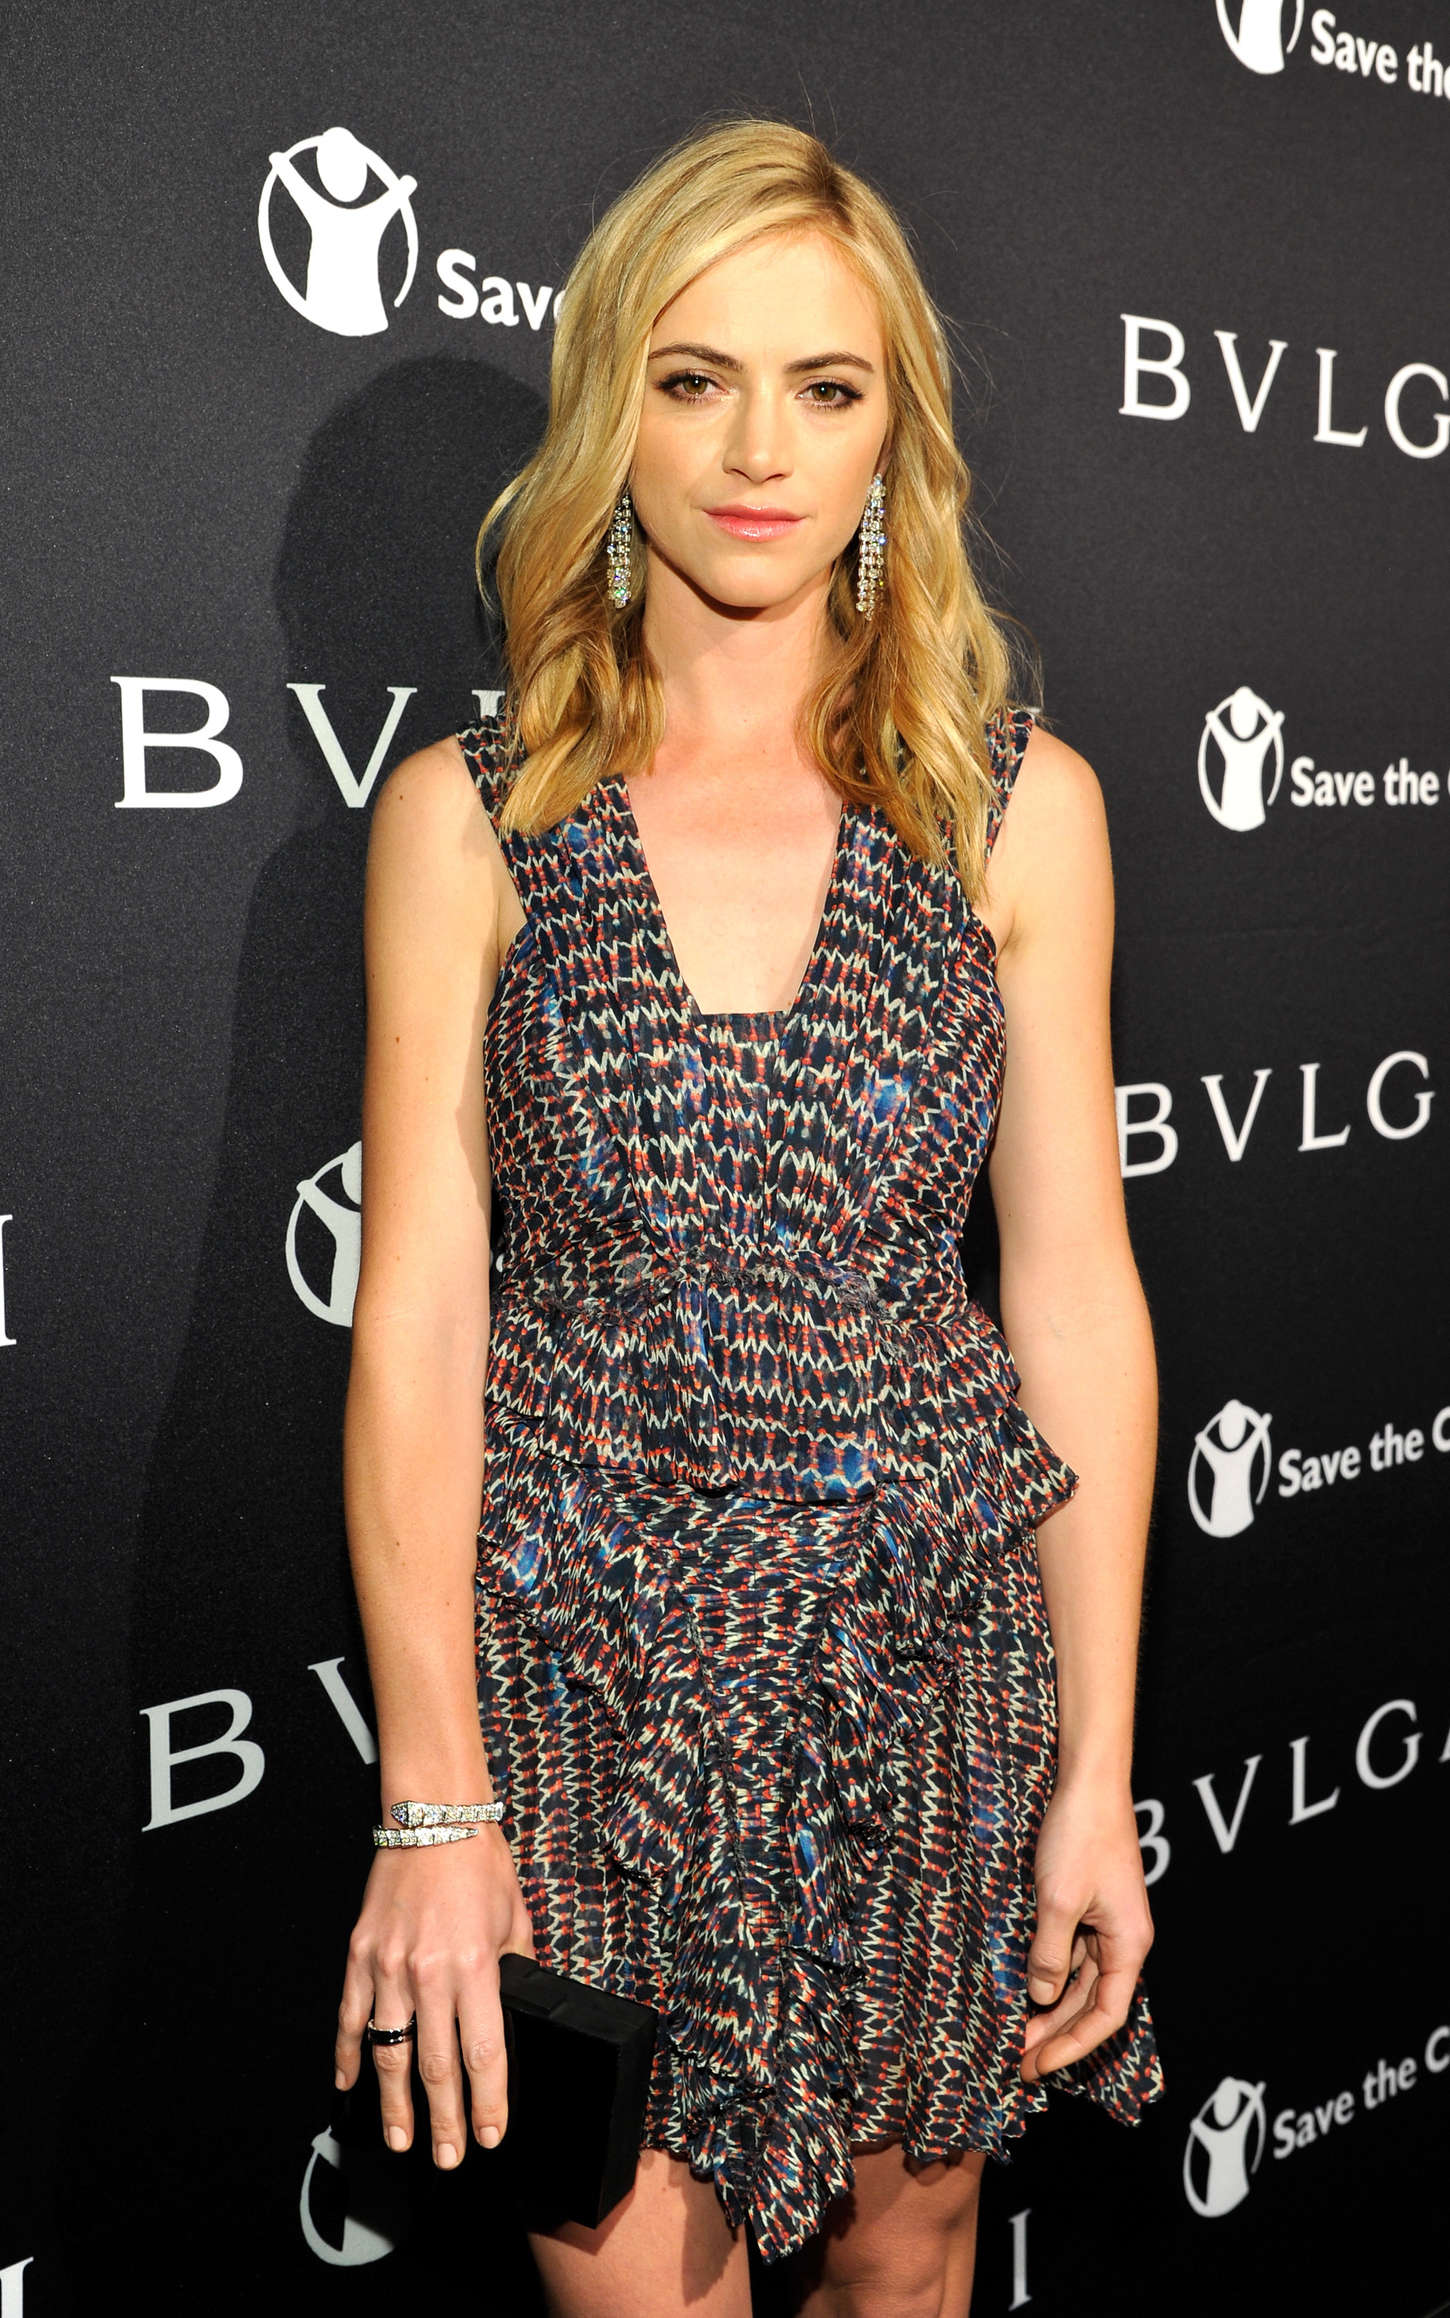 Emily Wickersham BVLGARI Save The Children STOP THINK GIVE Pre-Oscar Event in Beverly